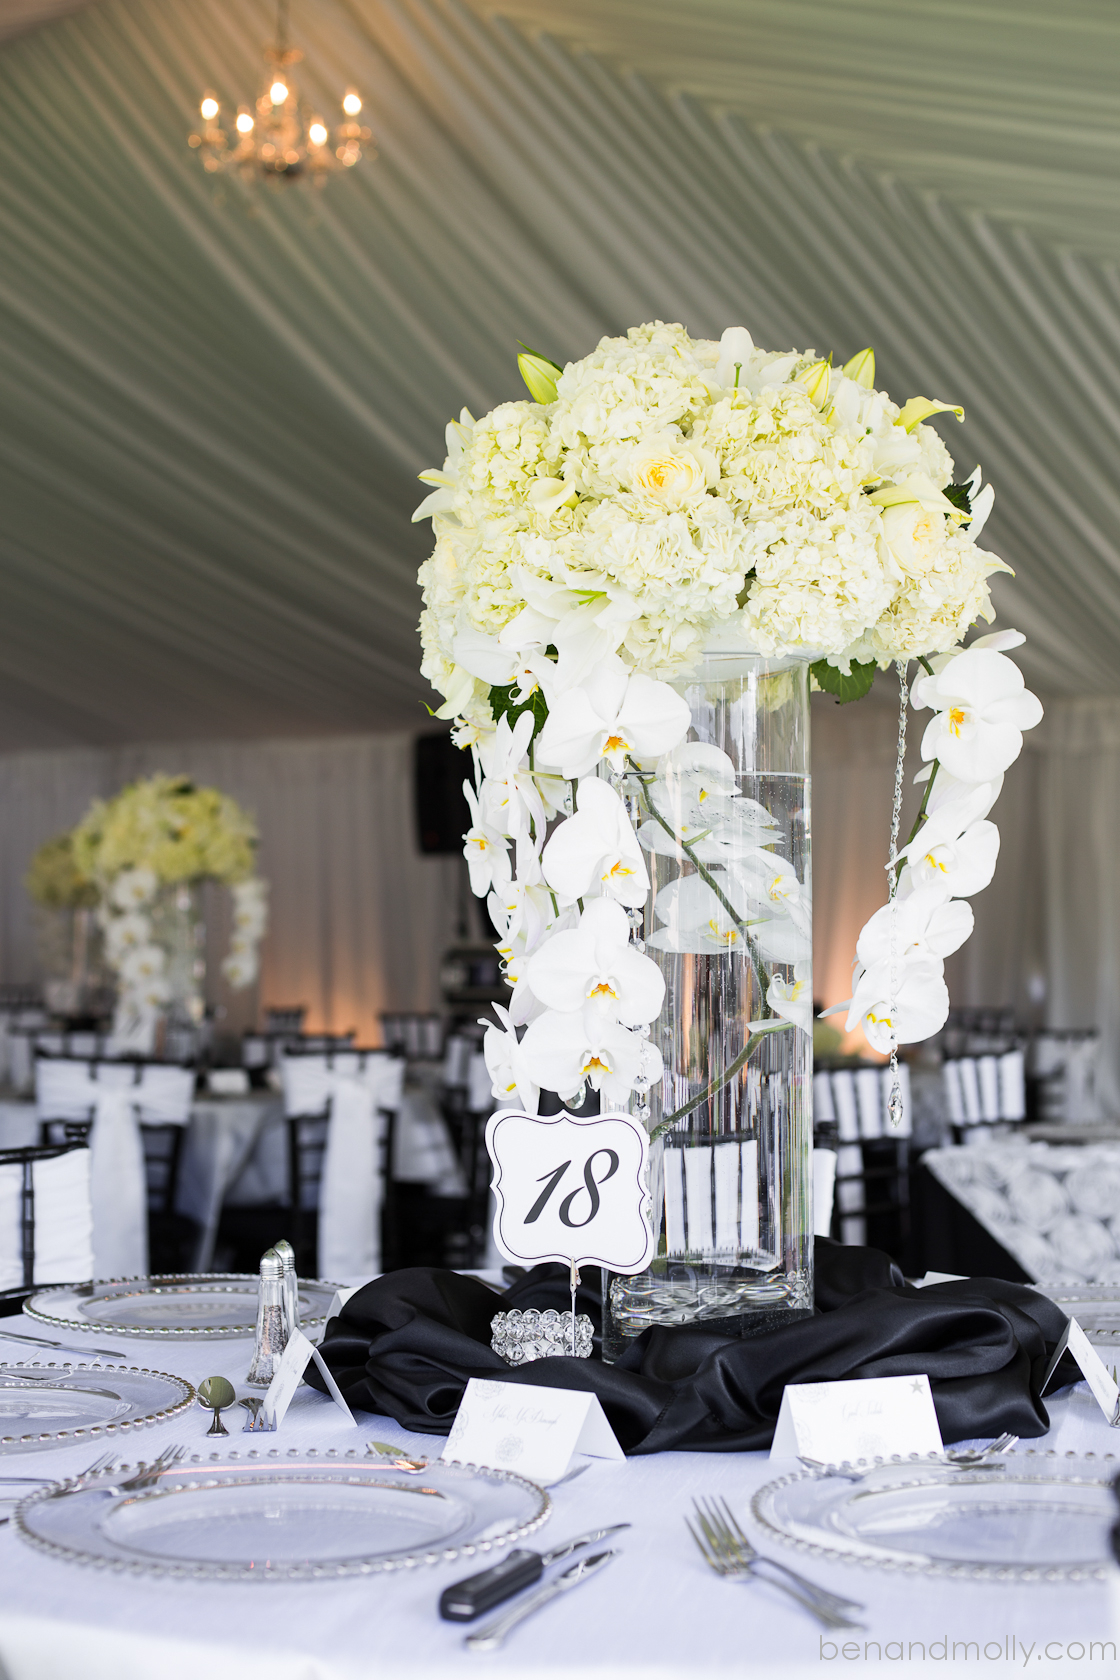 37 elegant floral centerpieces for wedding table decorating ideas classy white flower centerpiece for a wedding reception image credit paisley petals junglespirit